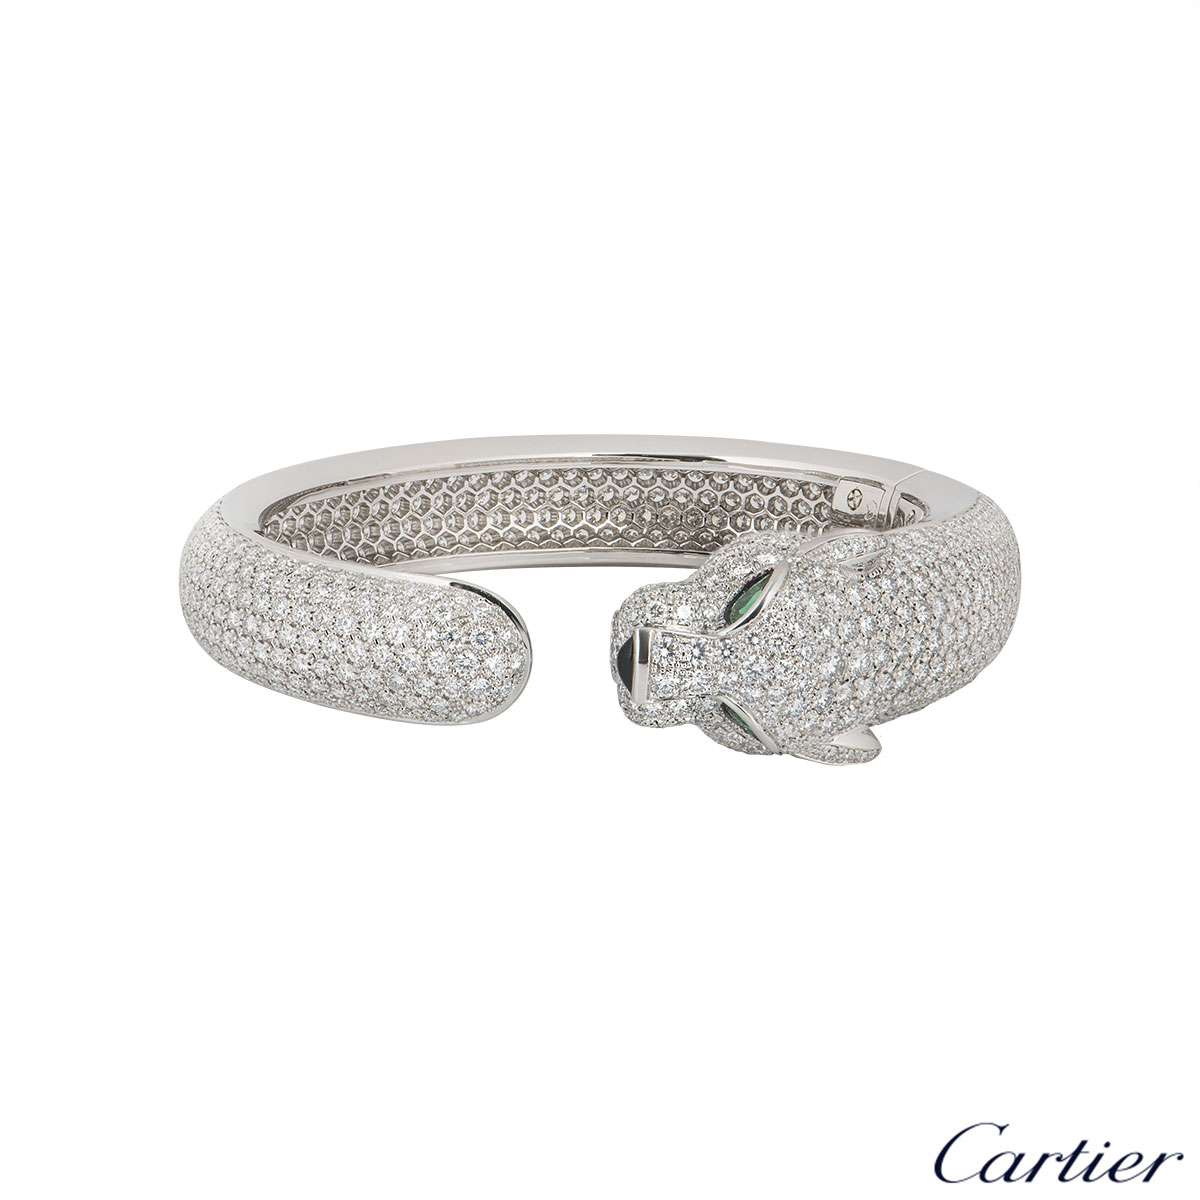 Cartier White Gold Diamond Panthere De Cartier Bracelet H6007417